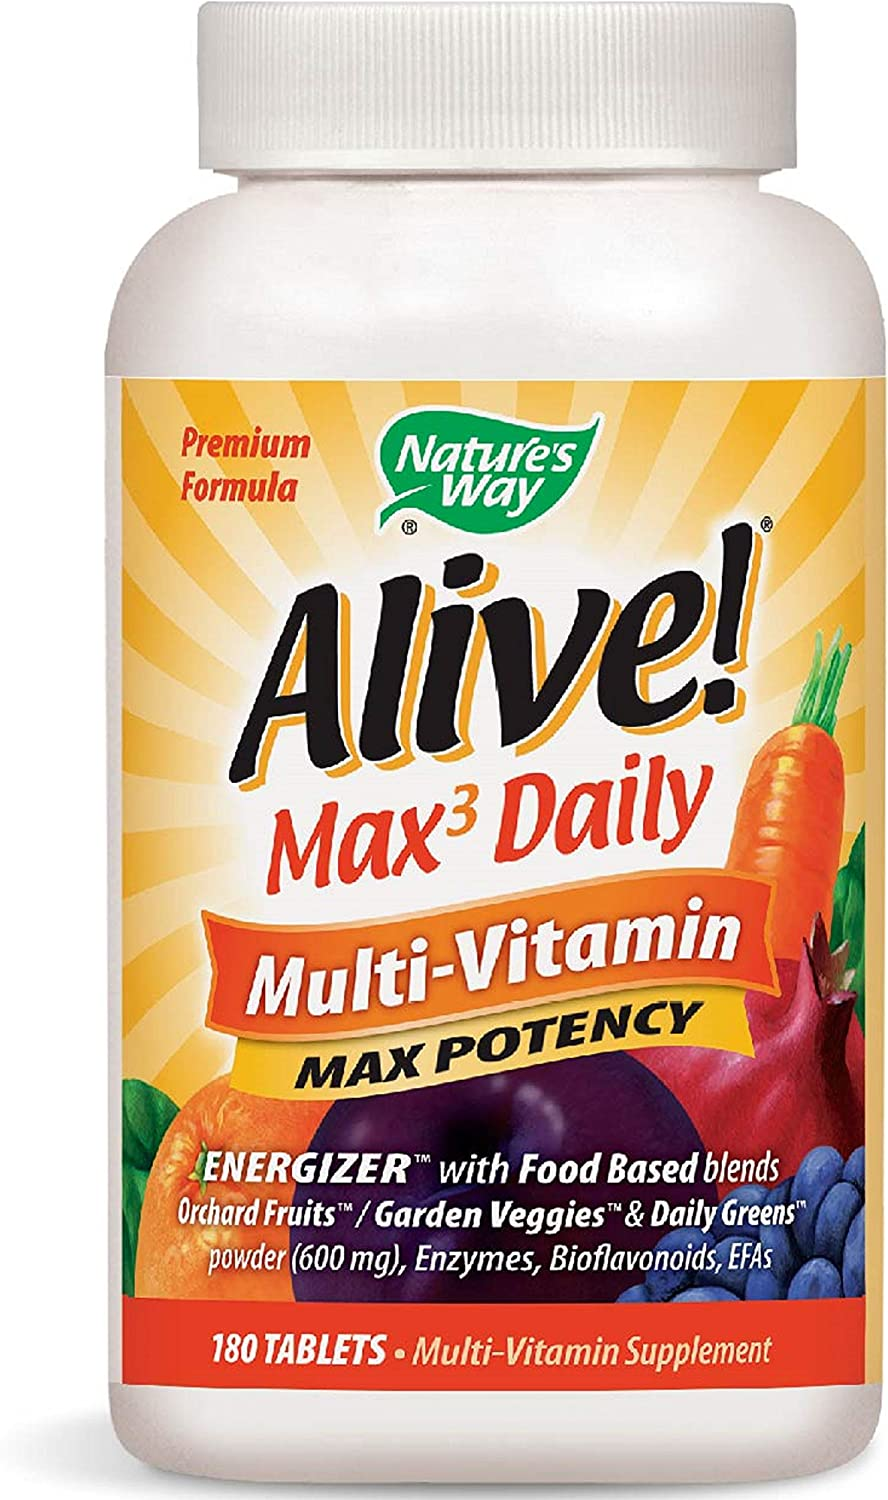 Nature s Way Alive Premium Max3 Daily Multi-Vitamin Energizer w Food Based Blends, 180 Count